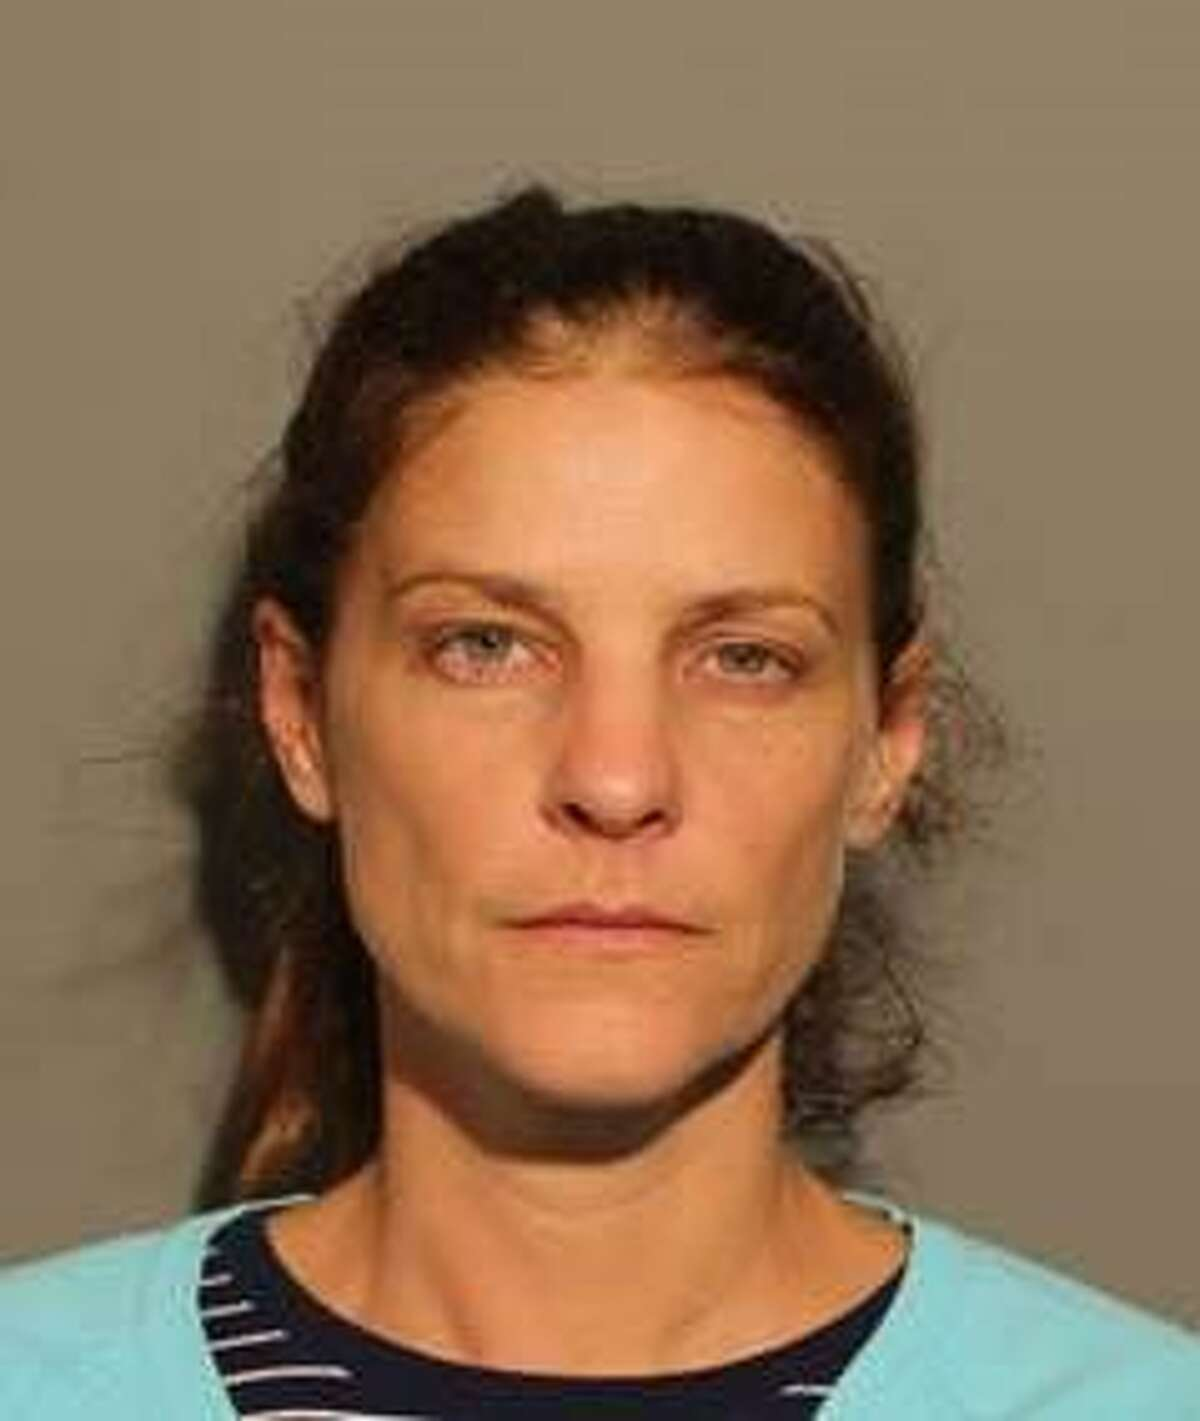 Michelle C. Troconis, 44, was arrested in connection with the disappearance of Jennifer Dulos, a New Canaan mother of five. Troconis, the girlfriend of Jennifer Dulos' estranged husband, was charged with tampering with or fabricating physical evidence and hindering prosecution in the first degree.